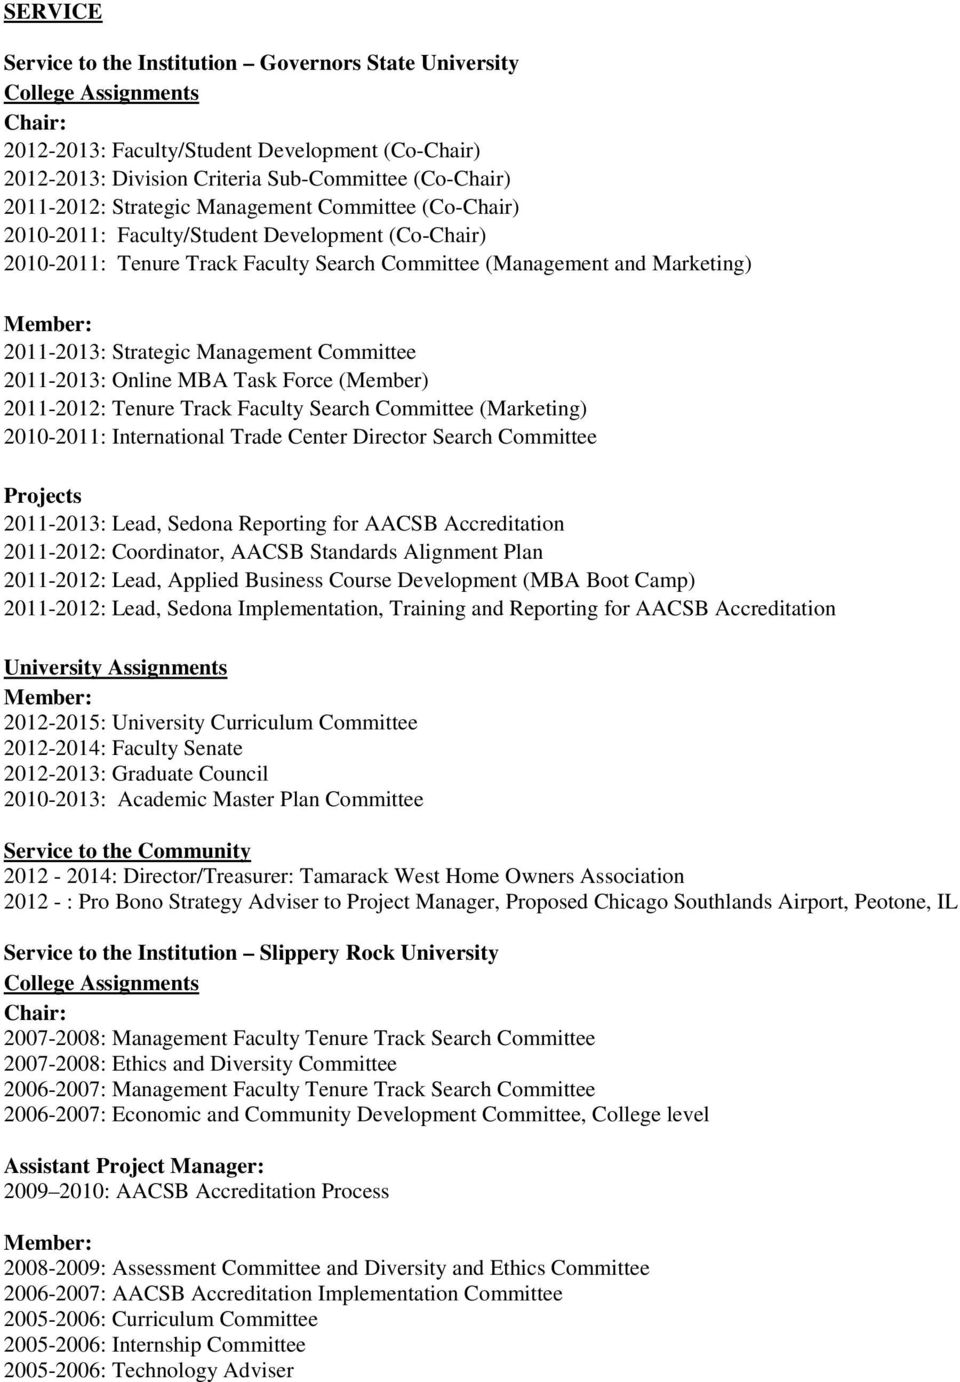 Committee 2011-2013: Online MBA Task Force (Member) 2011-2012: Tenure Track Faculty Search Committee (Marketing) 2010-2011: International Trade Center Director Search Committee Projects 2011-2013: